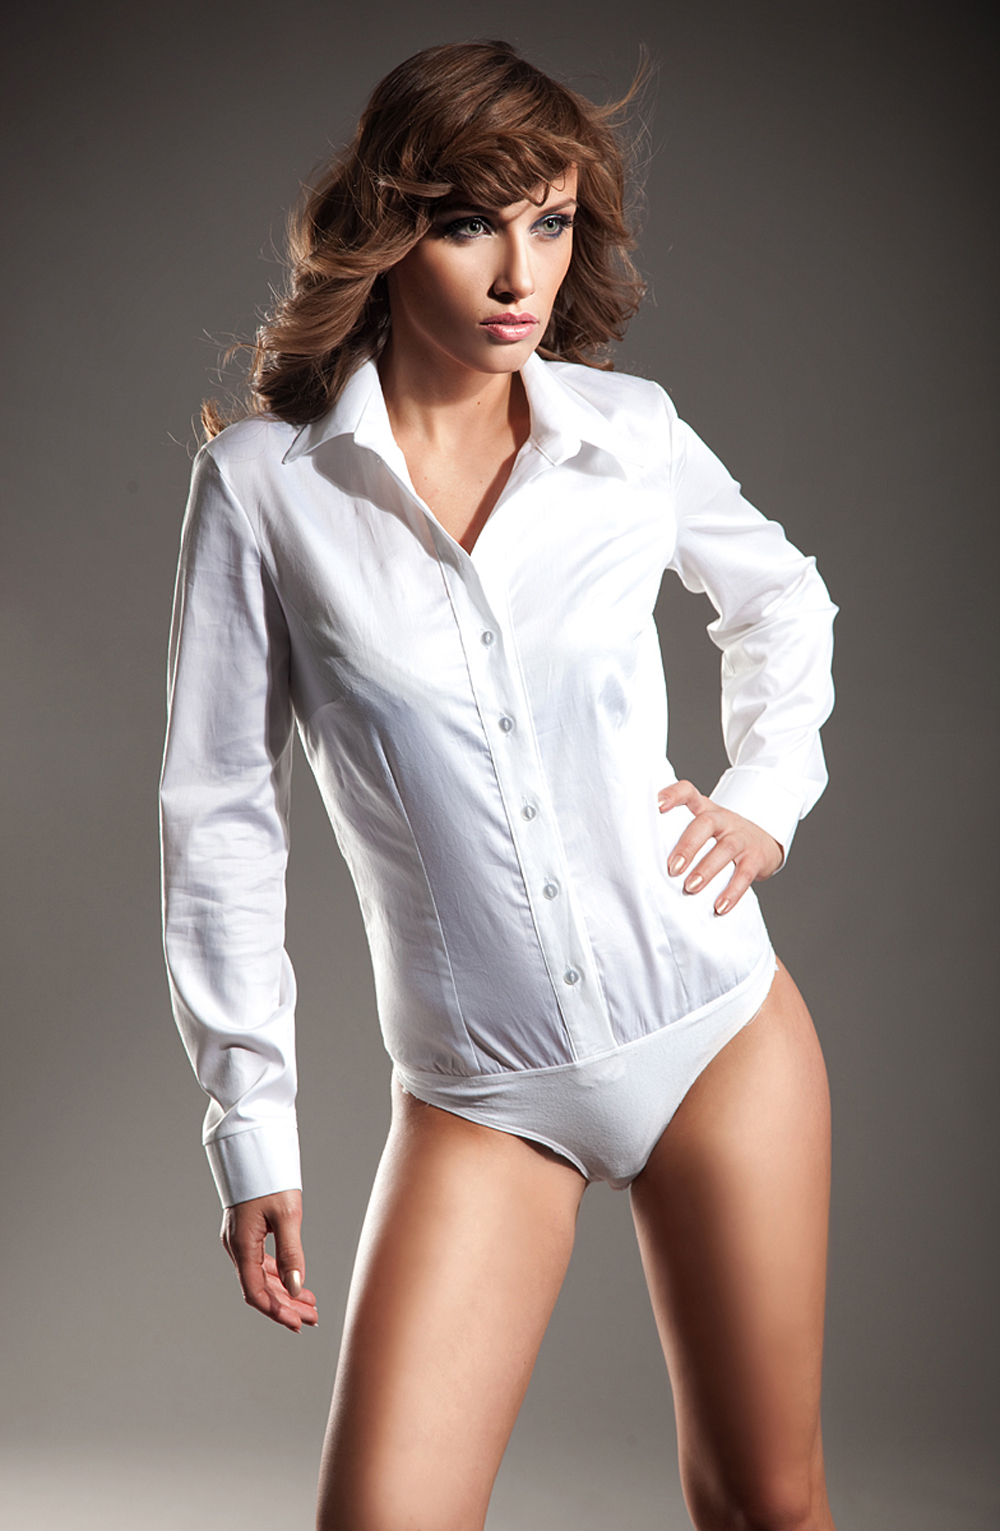 Womens bodysuit shirt - results from brands Carter's, Gerber, Crazy Dog, products like